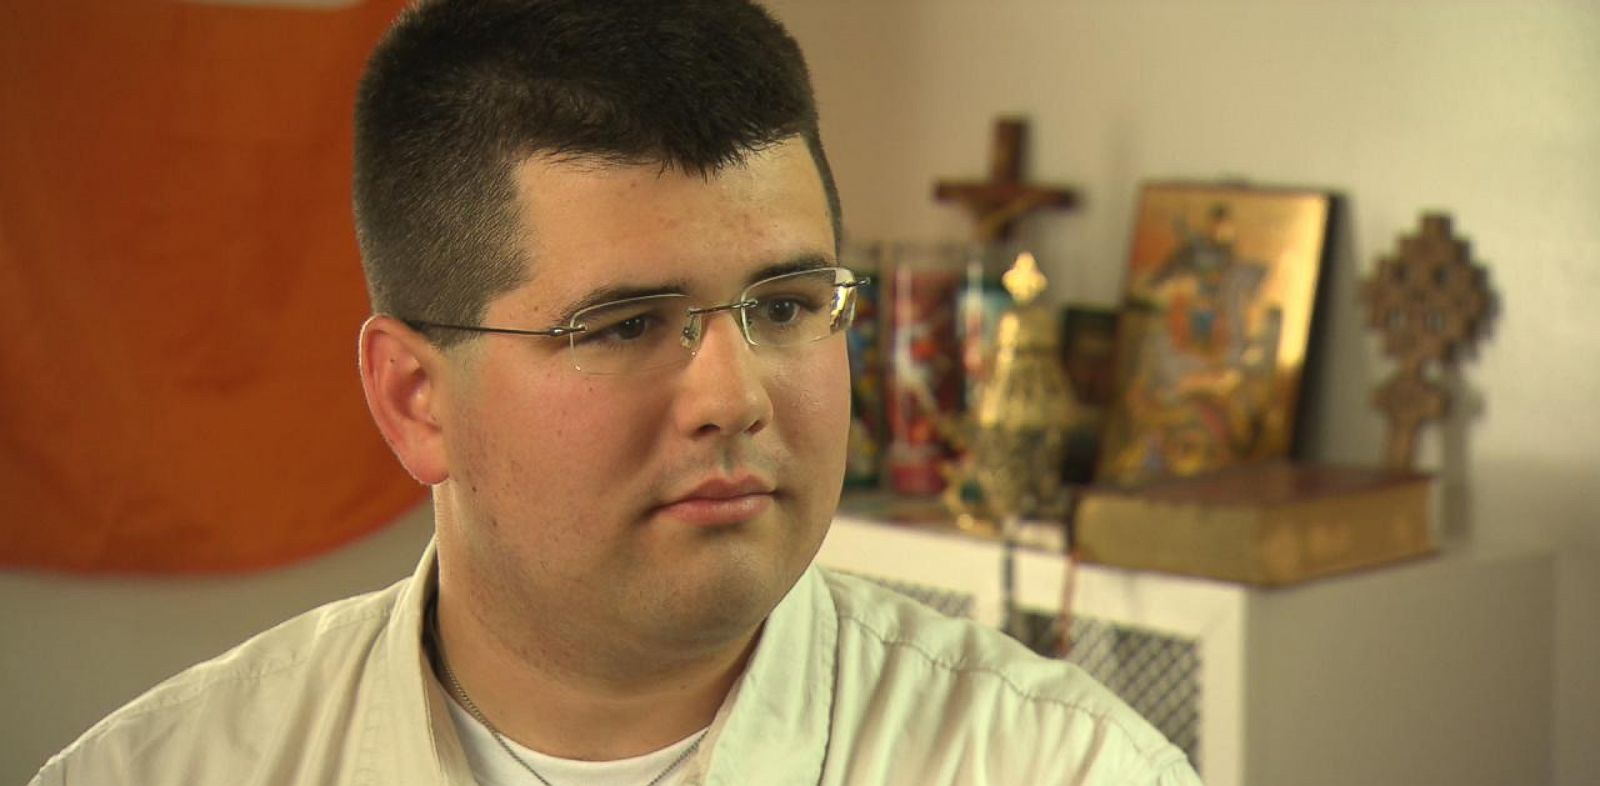 PHOTO: Matt Heimbach, 22, believes the United States should go back to a time of segregation.